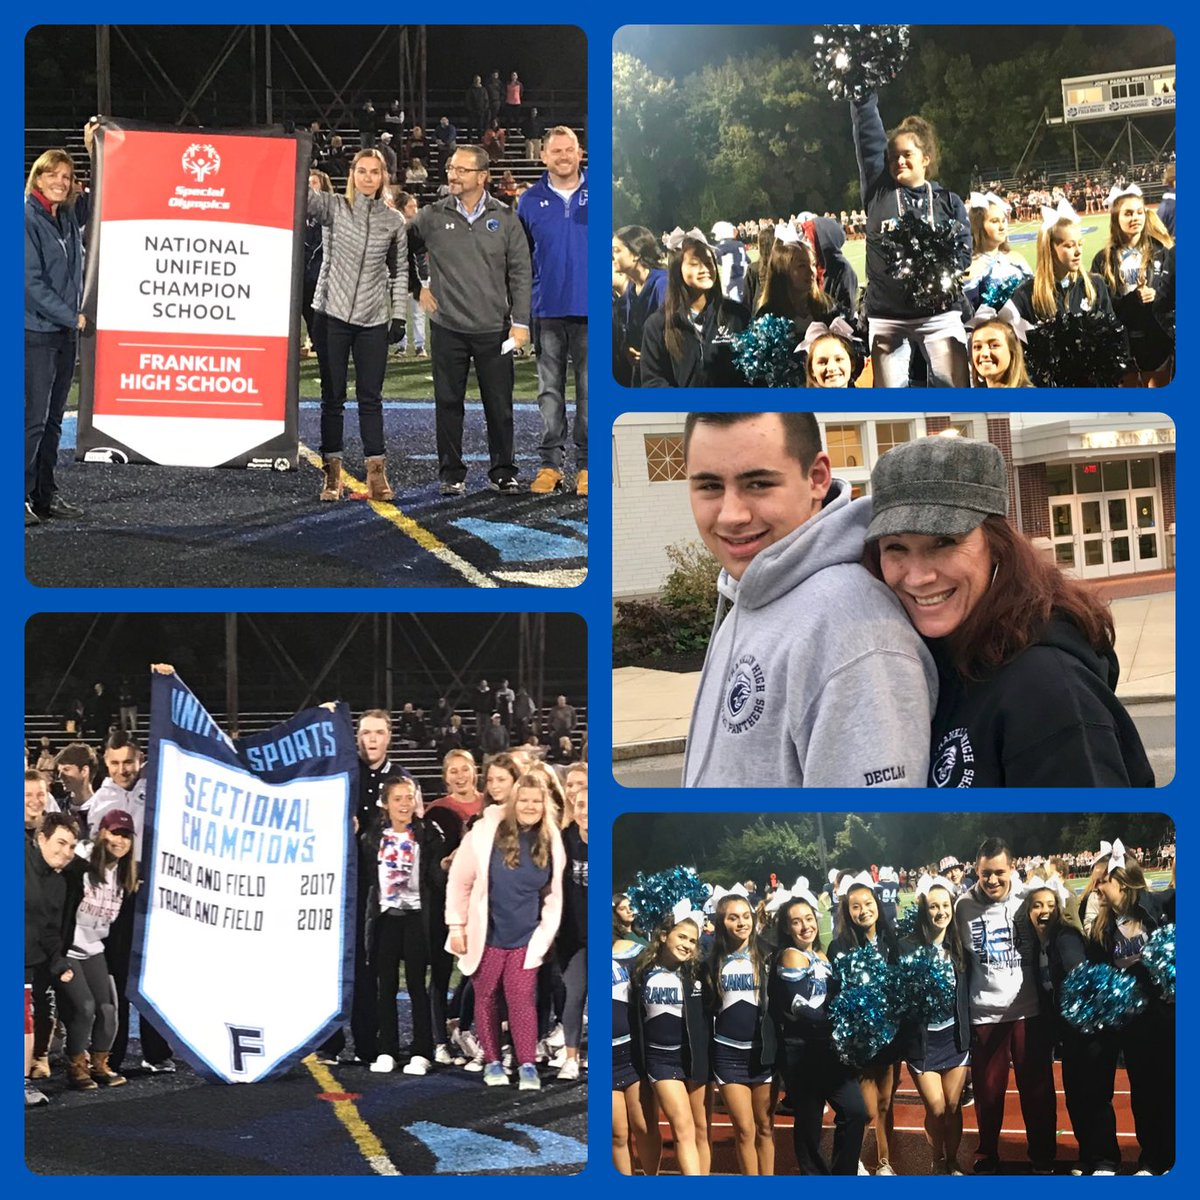 Here's your pic collage Mr. @FranklinHS !!! Such an awesome night celebrating @FHSBestBuddies and @FranklinUnified.